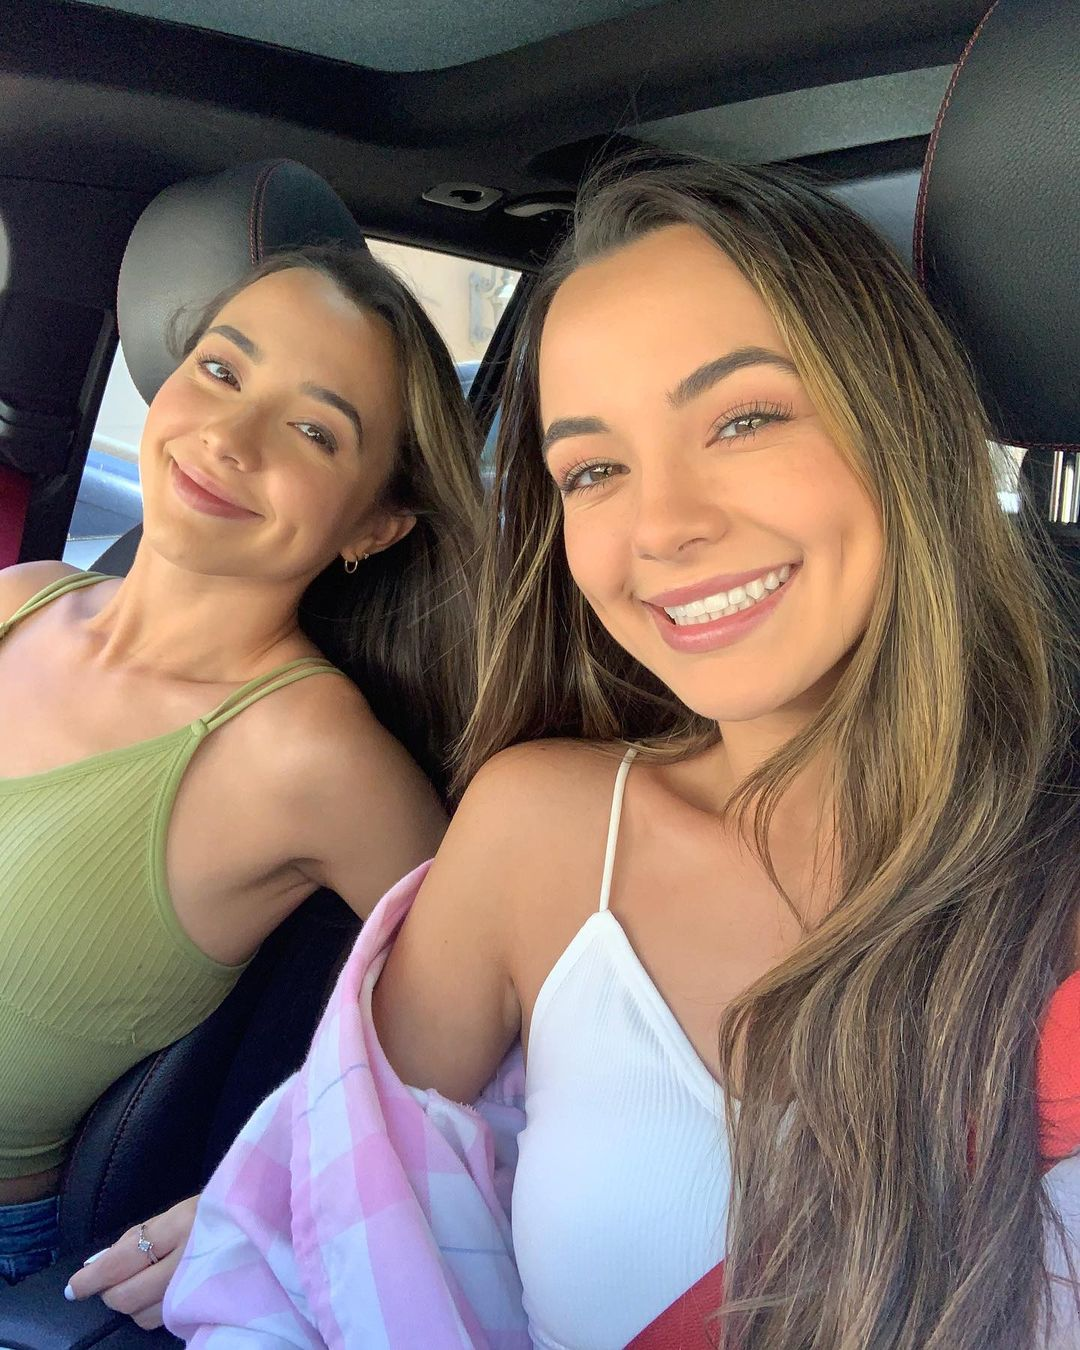 Veronica and Vanessa Merrell Dish on the 'Honor' of Being Named Coca-Cola Flavor Curators